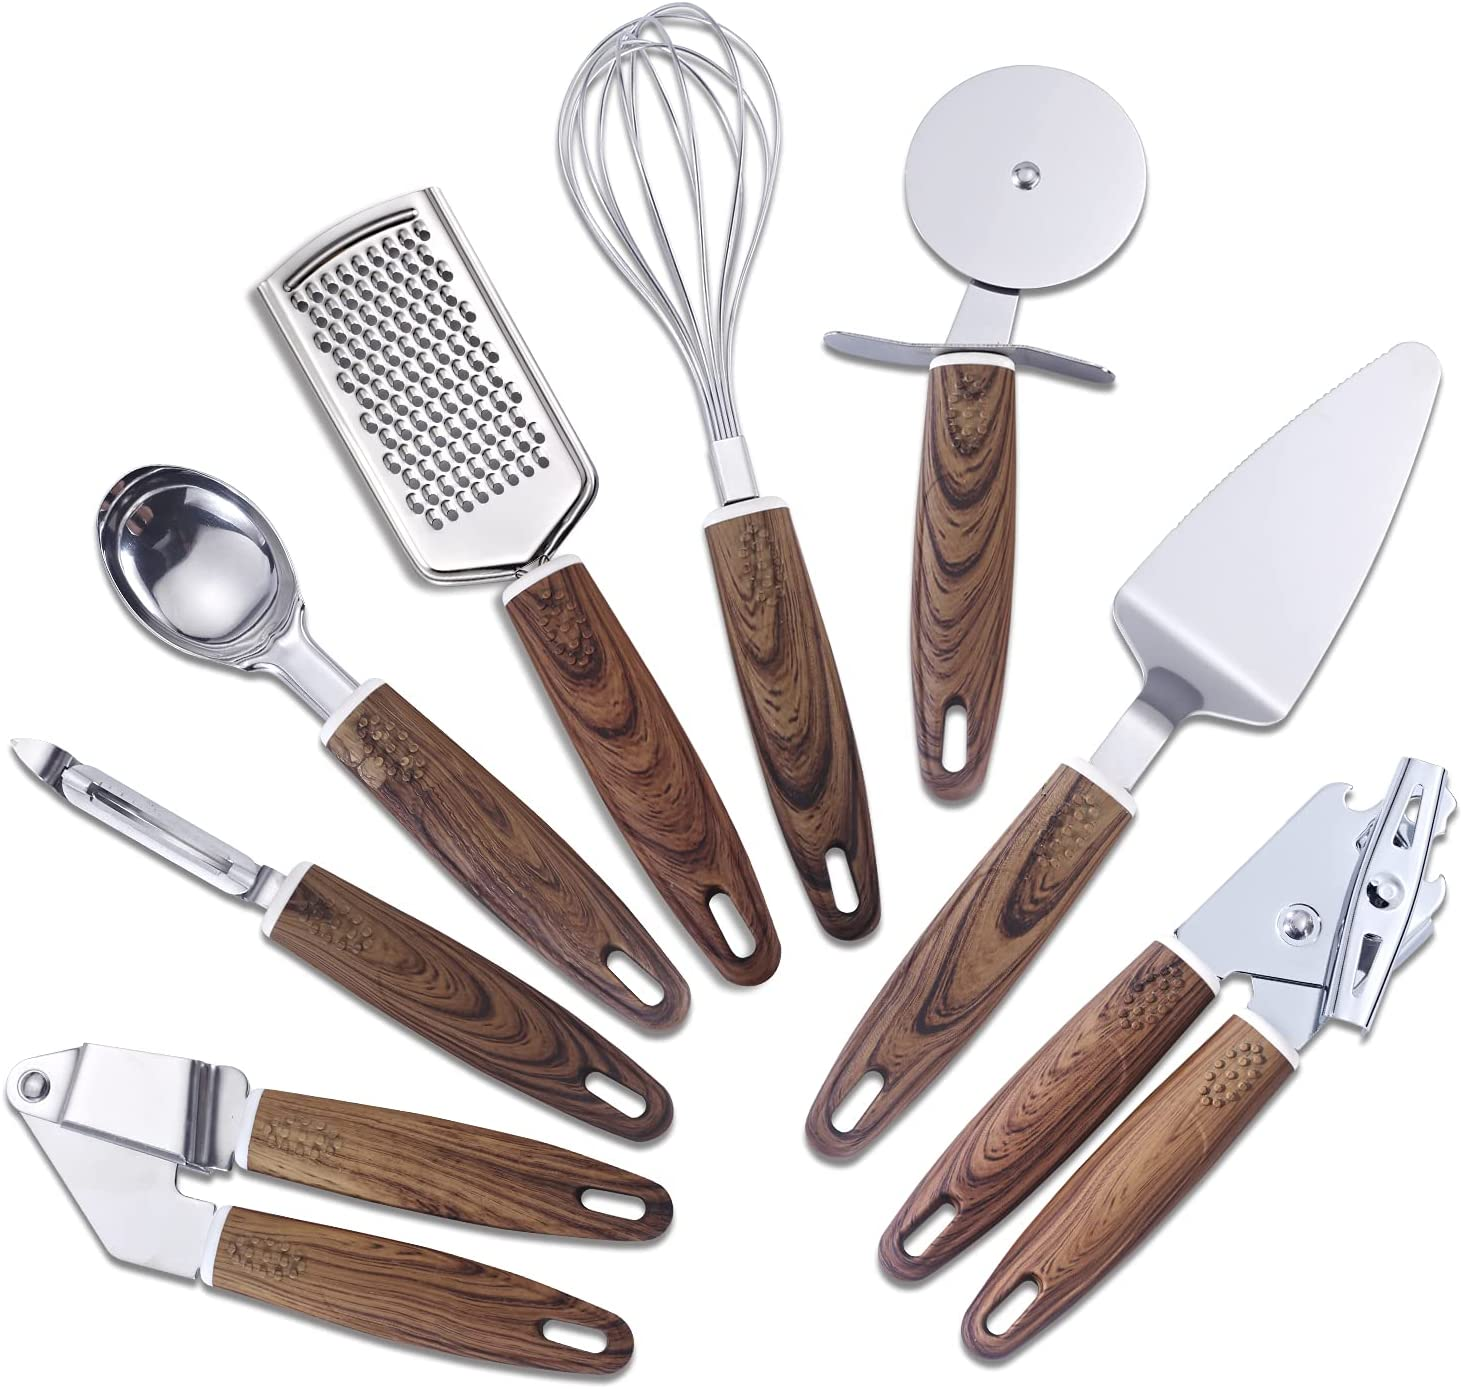 8-Piece Stainless Steel Cooking Utensil Set Can Opener Spatula Set Kitchen Pizza Tools Gadget Sets Utensils : Home & Kitchen